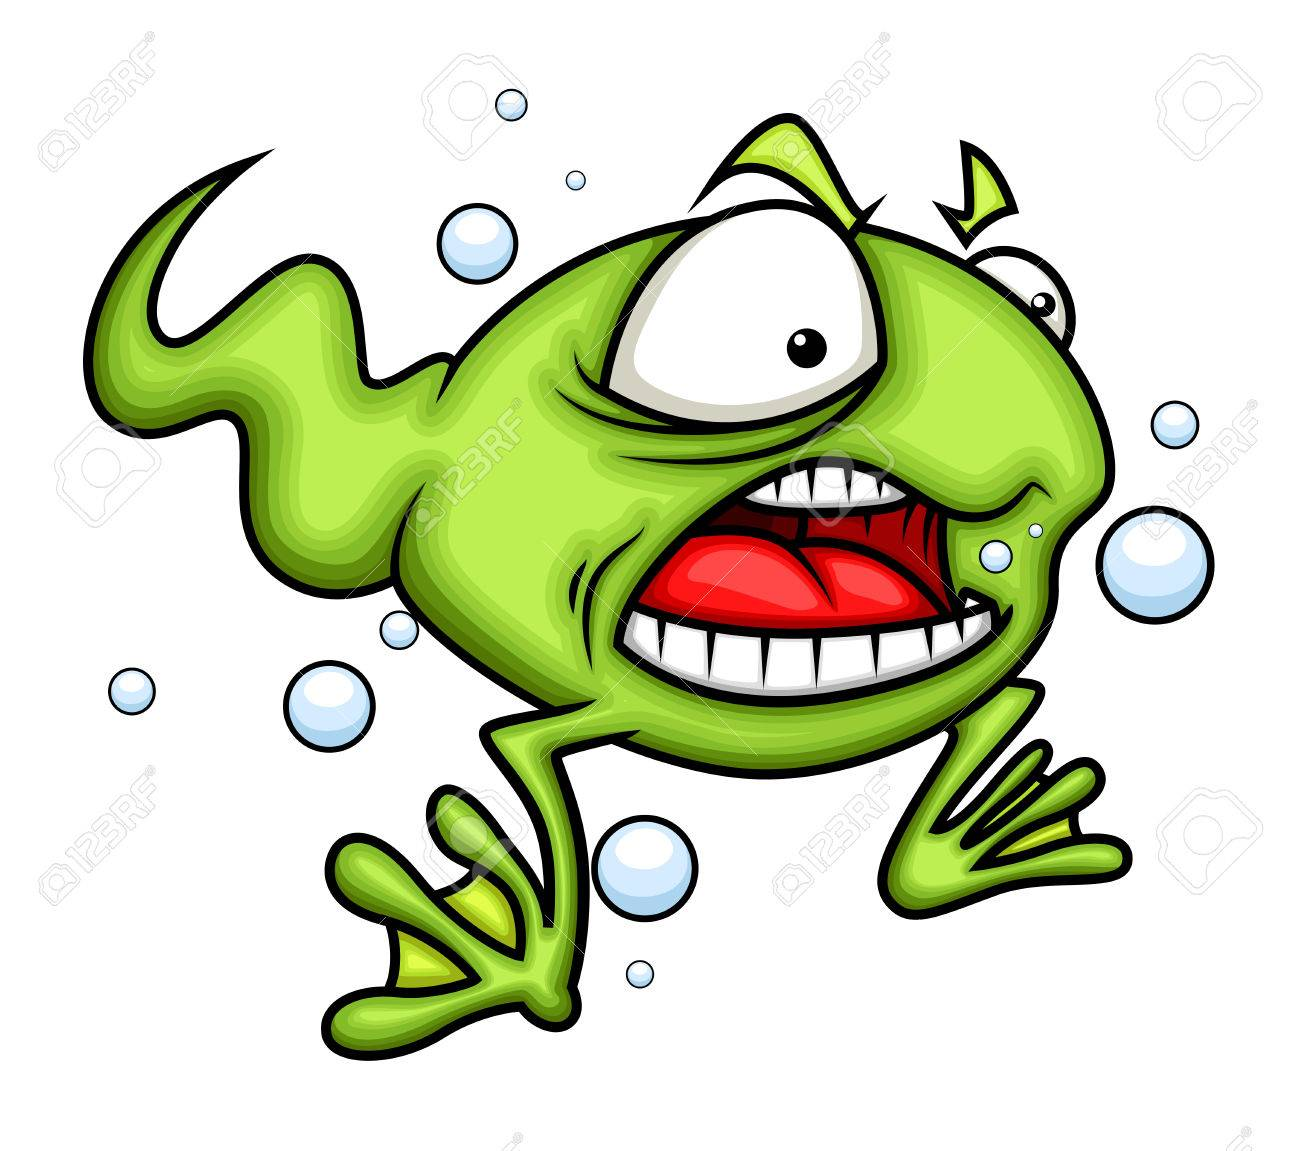 angry cartoon frog royalty free cliparts vectors and stock rh 123rf com Laughing Frog Laughing Frog